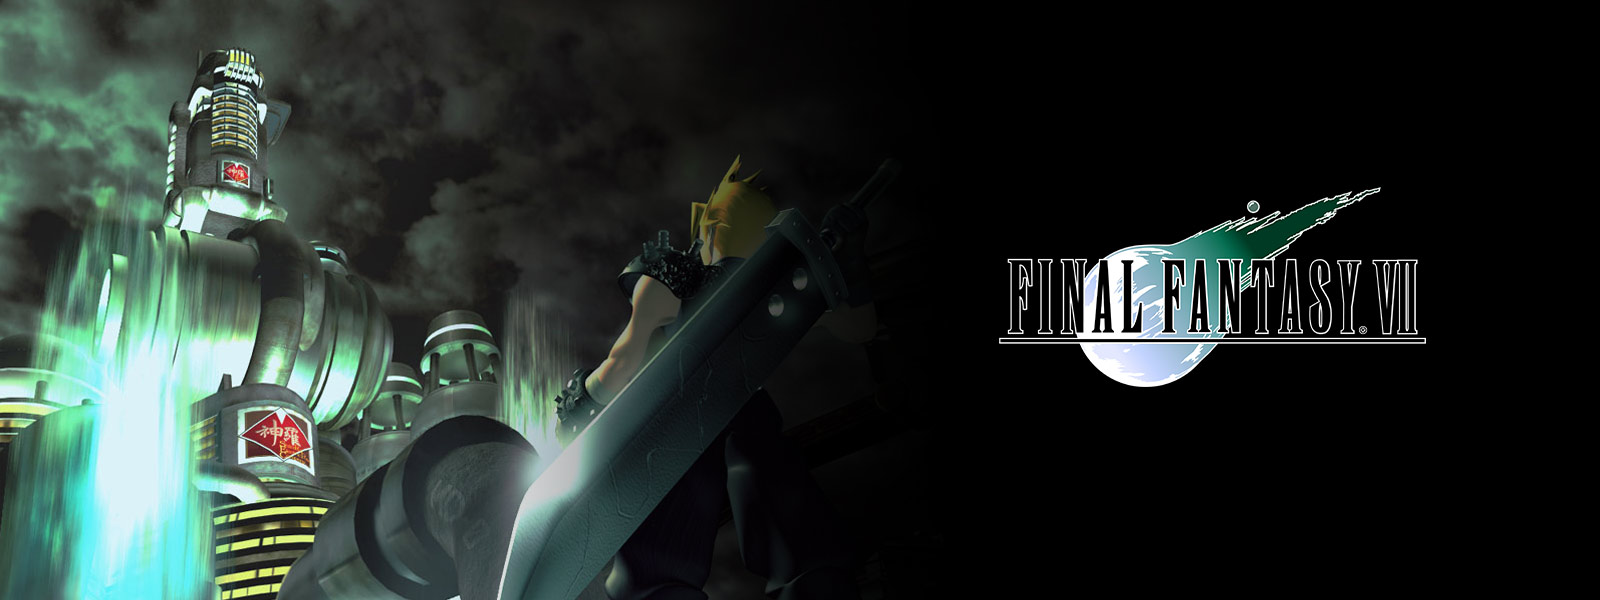 Final Fantasy 7 is now available on Xbox Game Pass